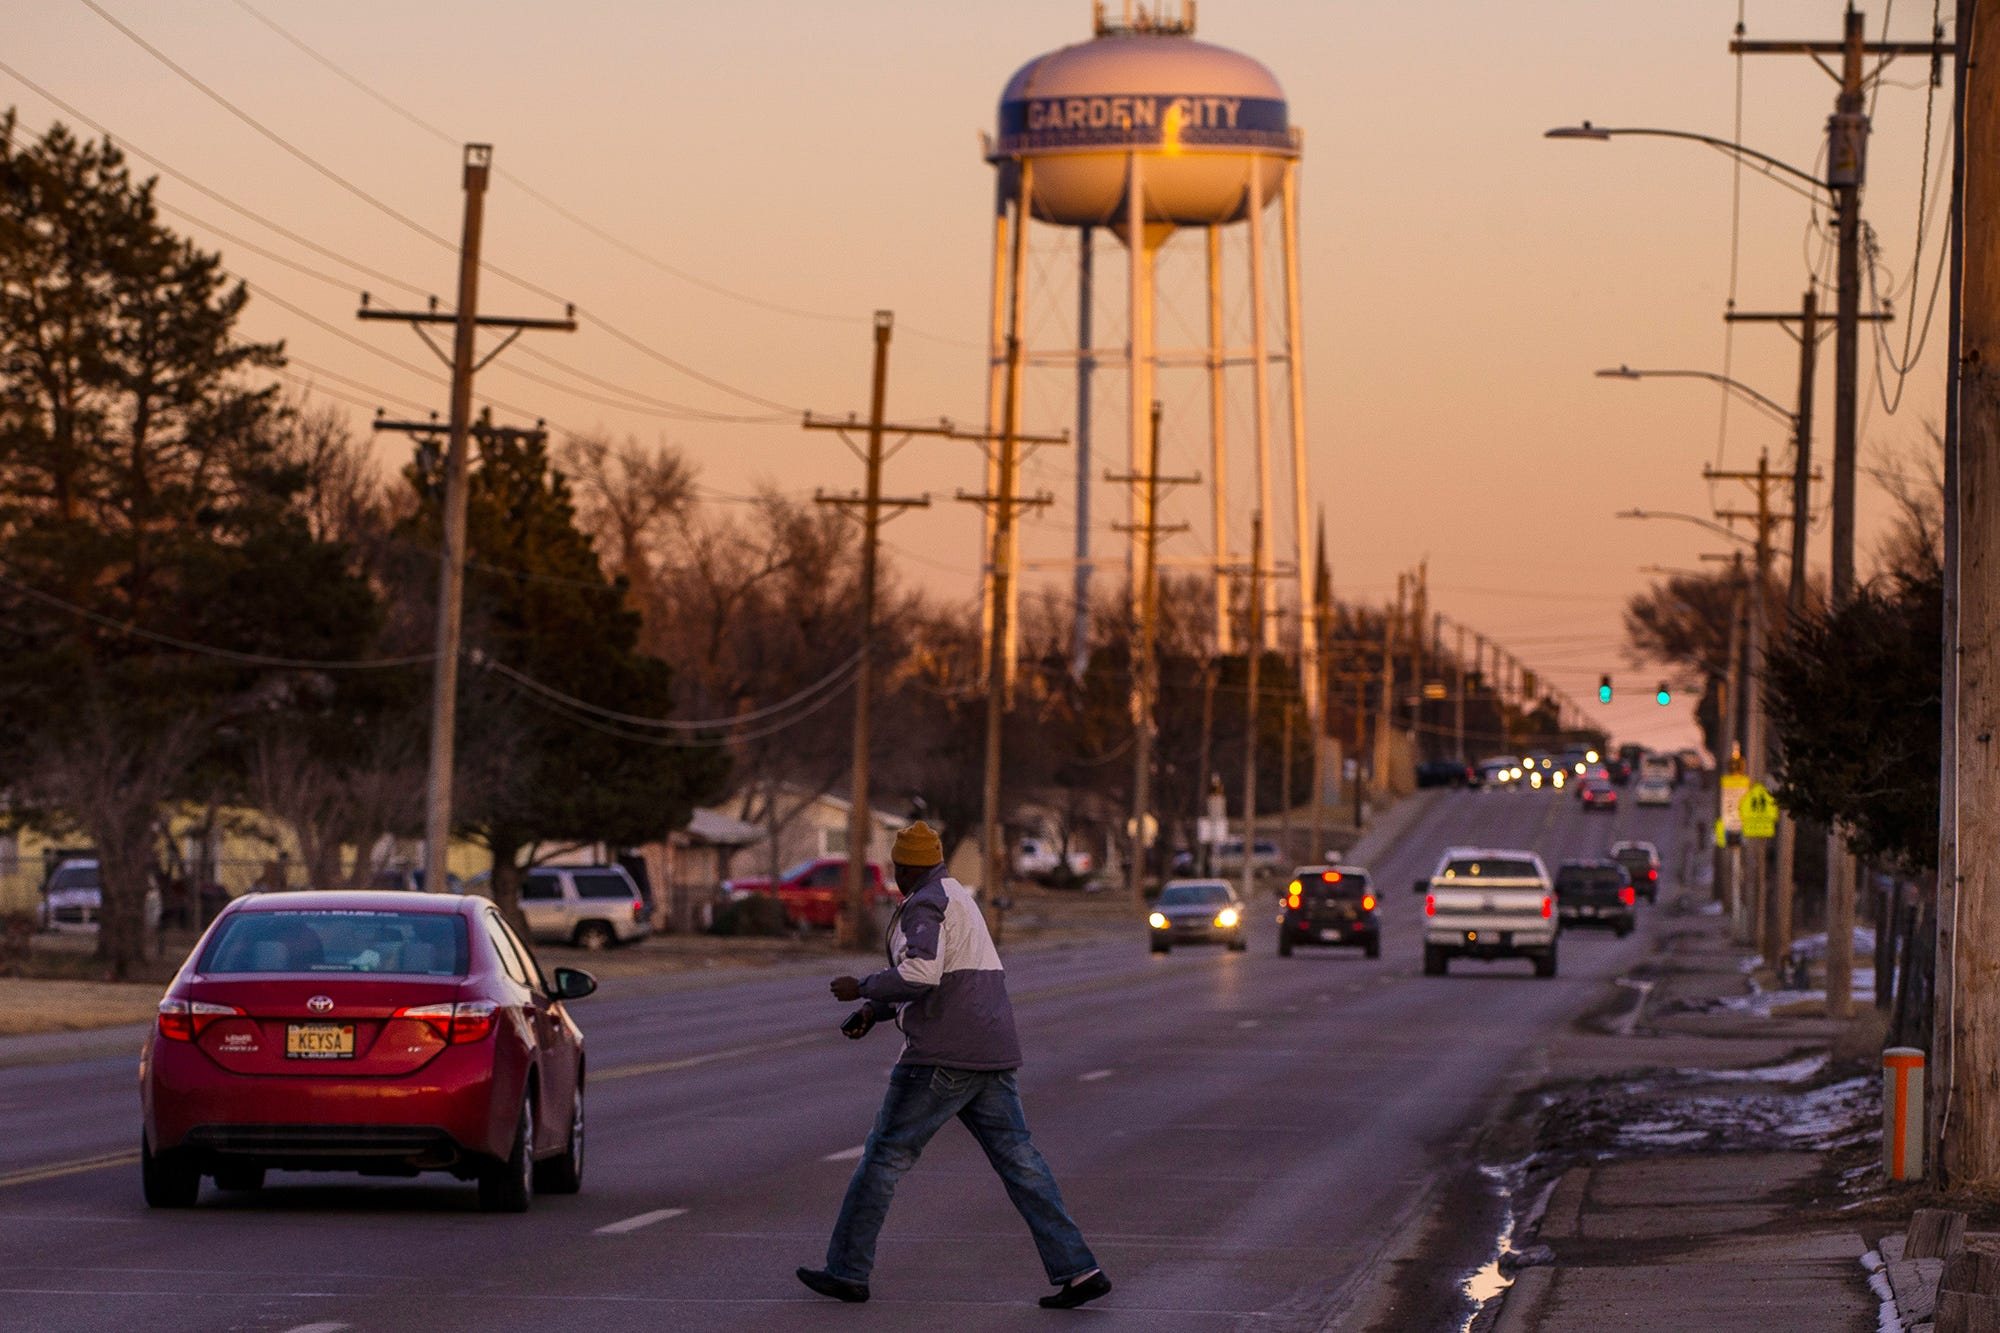 A man crosses the street between the Garden Spot apartments, which is home to about 100 Somali refugees on Wednesday, Jan. 23, 2019. In Garden City, population 27,000, residents speak 40 languages, including Burmese, Spanish, Vietnamese, Swahili and Creole. About 23 percent of the population is foreign born, according to the U.S. Census.